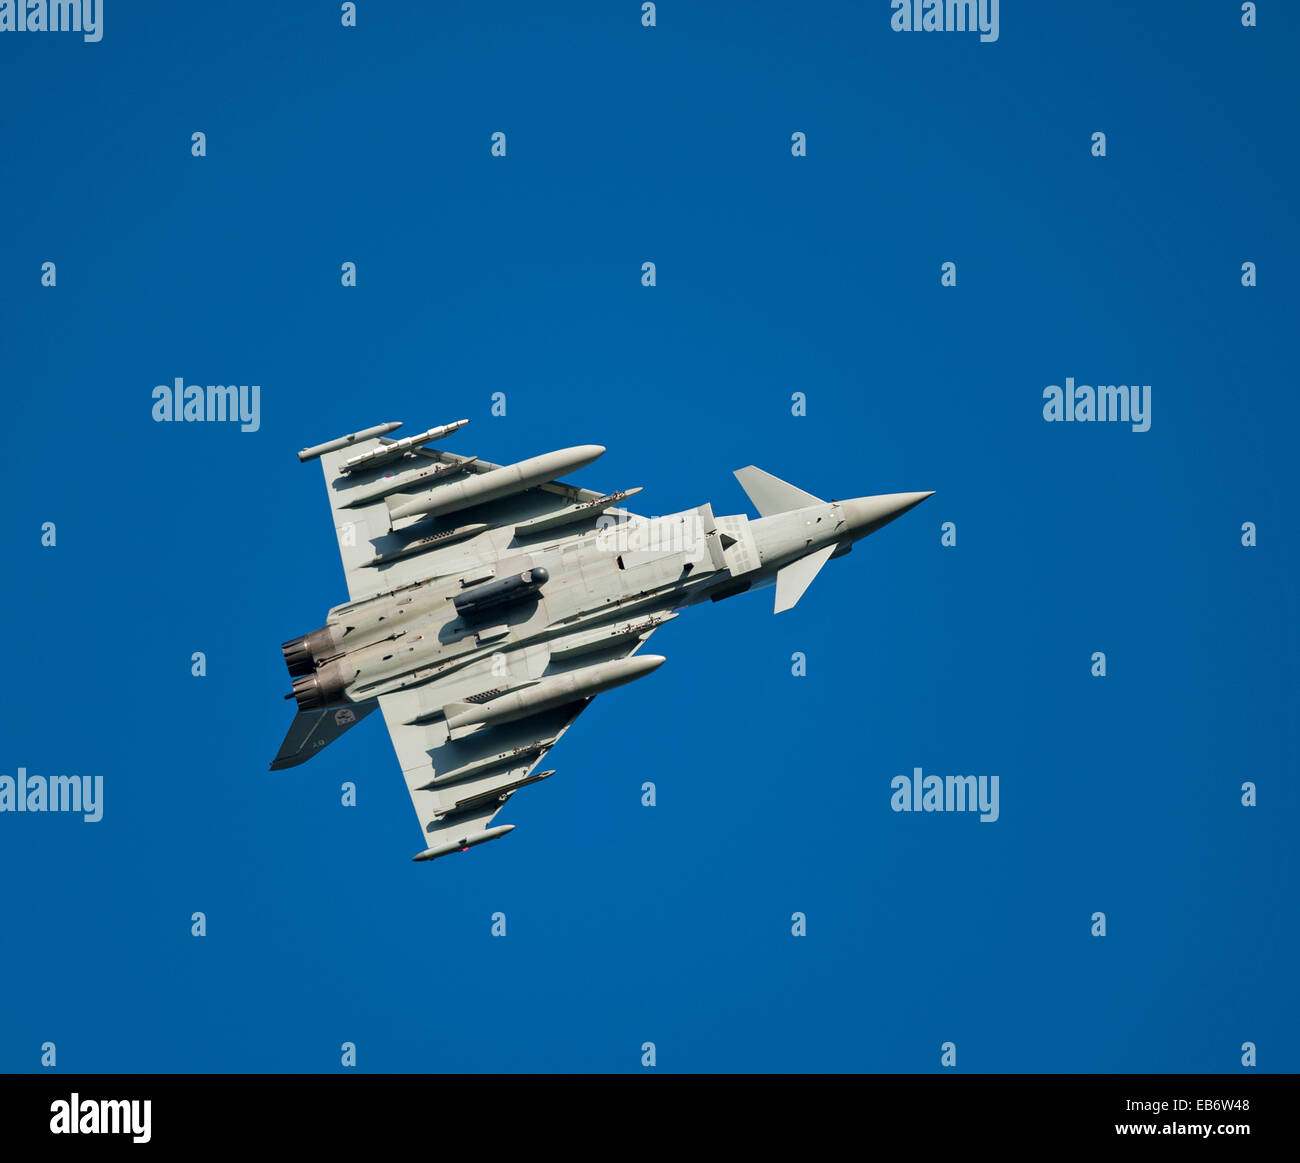 Eurofighter Typhoon FRG4 Military Fast Jet Fighter.  SCO 9187. - Stock Image